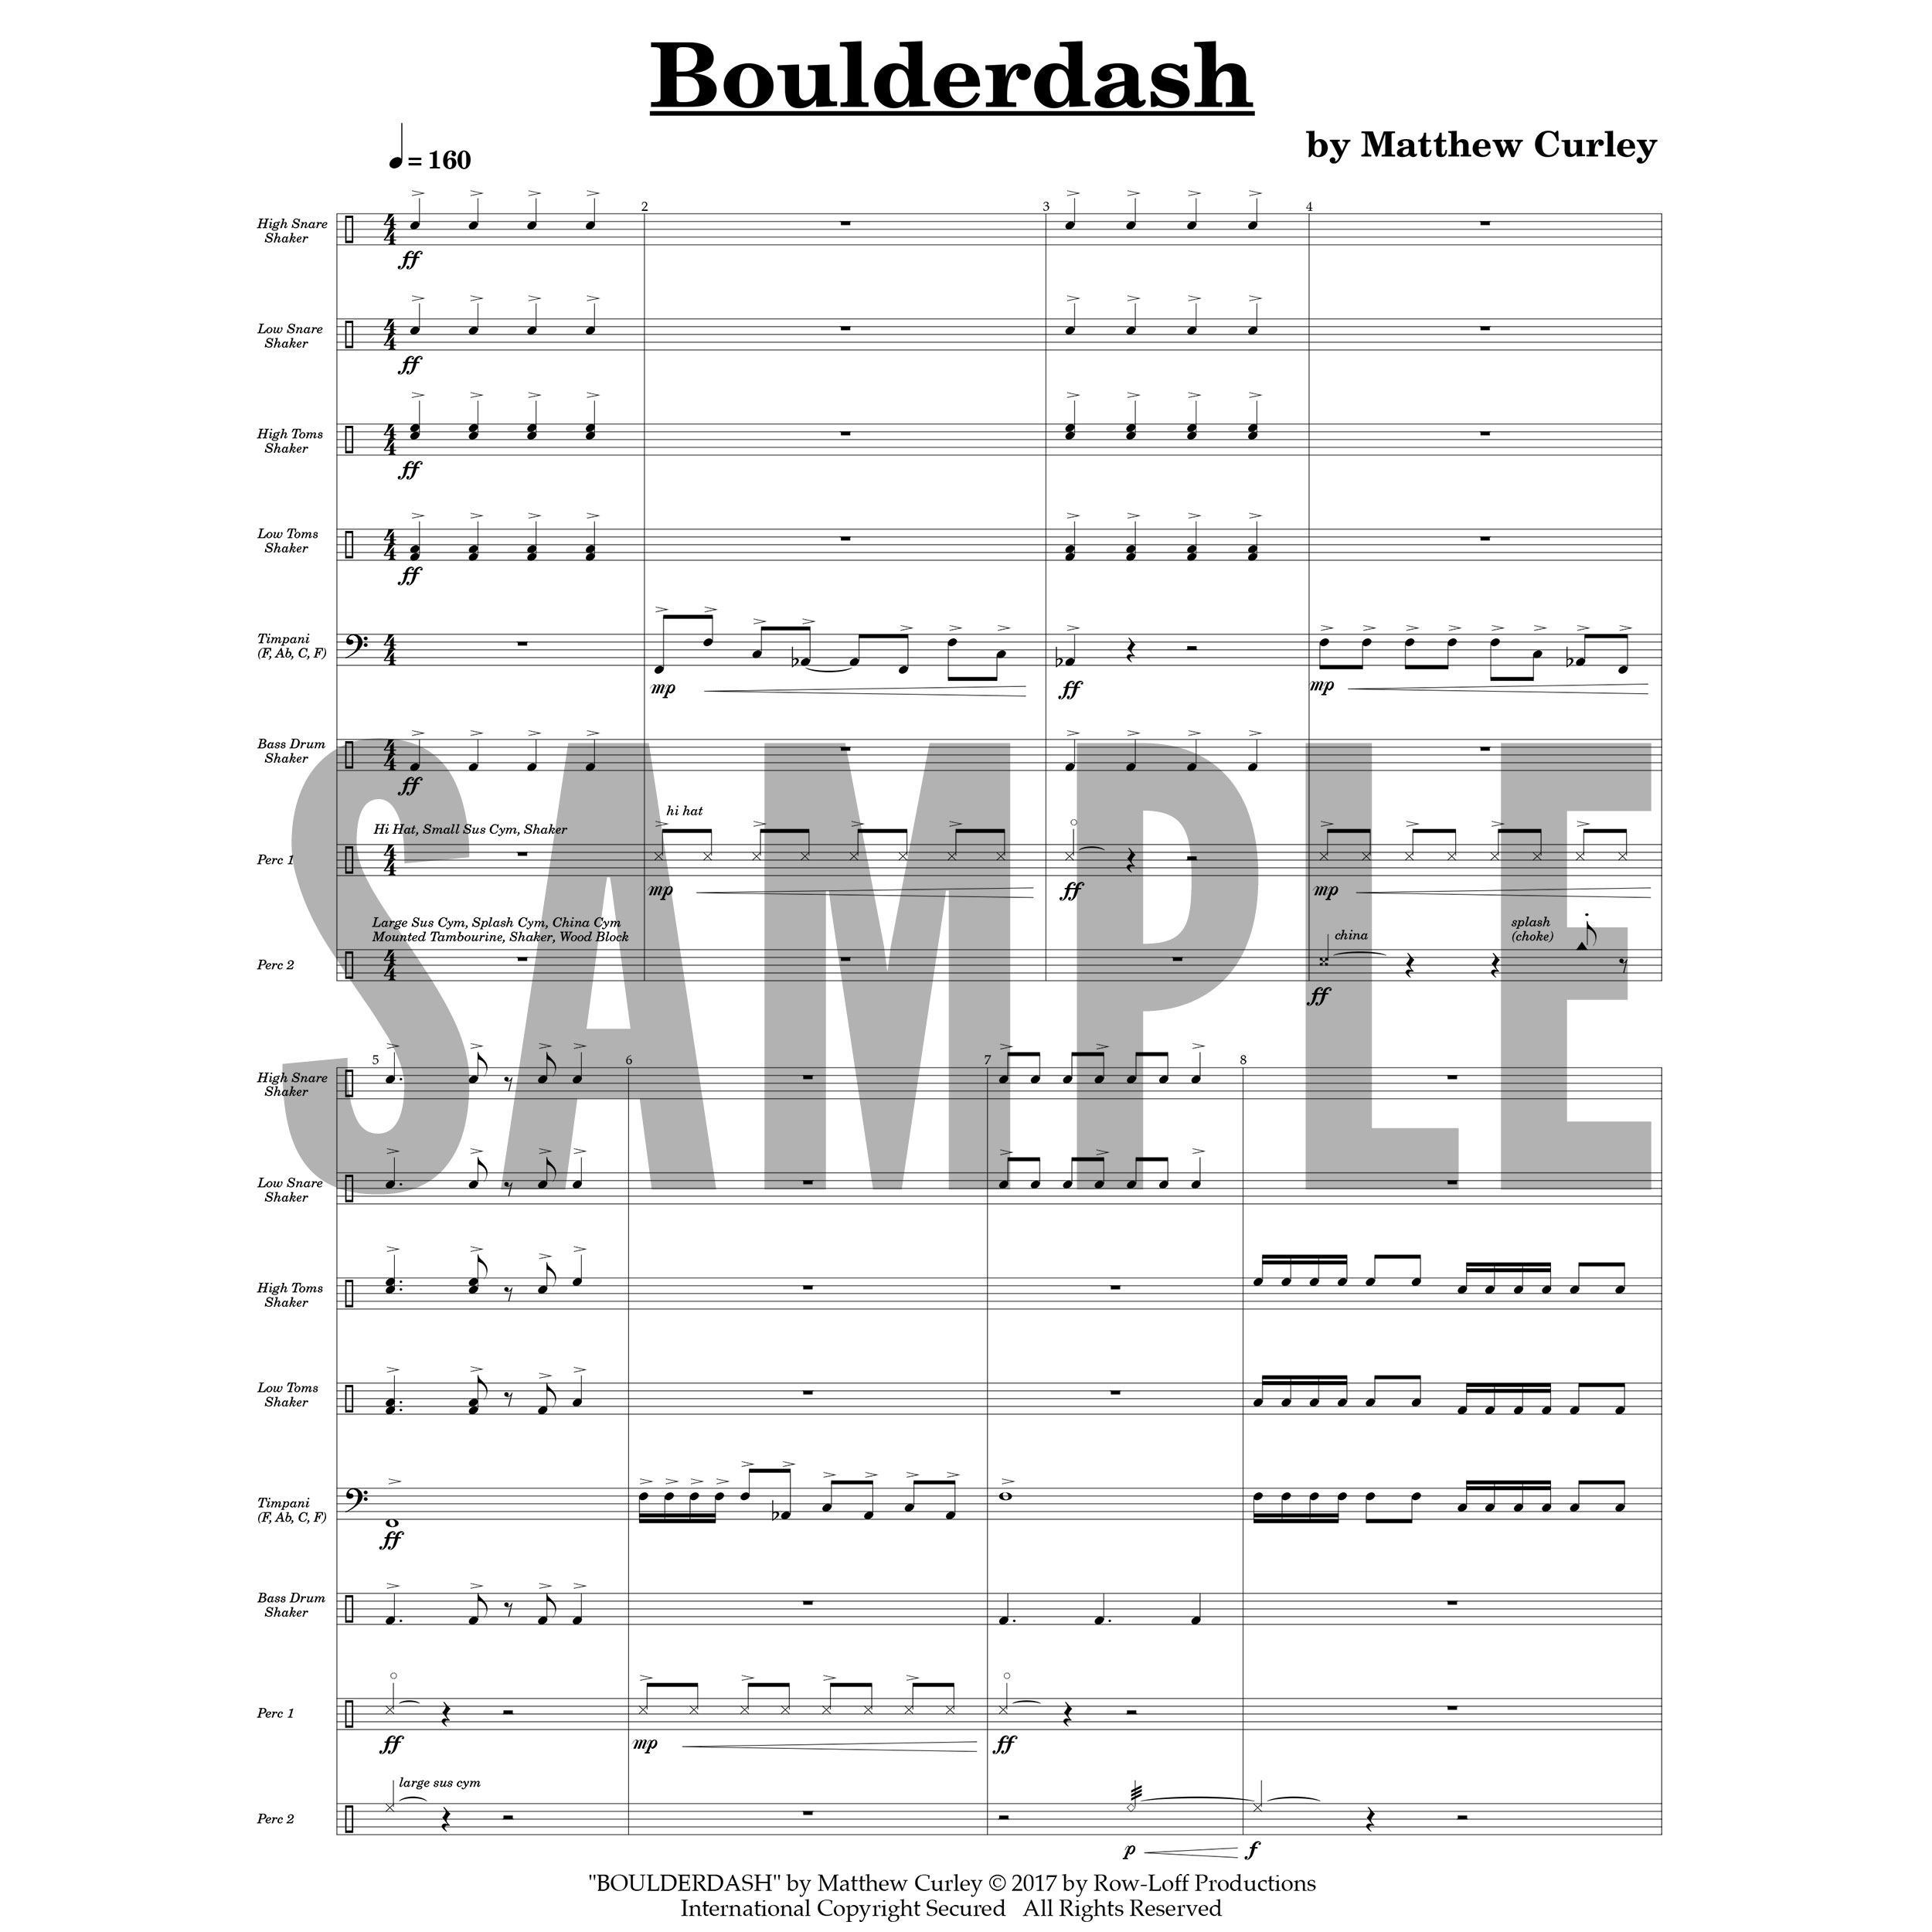 Boulderdash by Matthew Curley